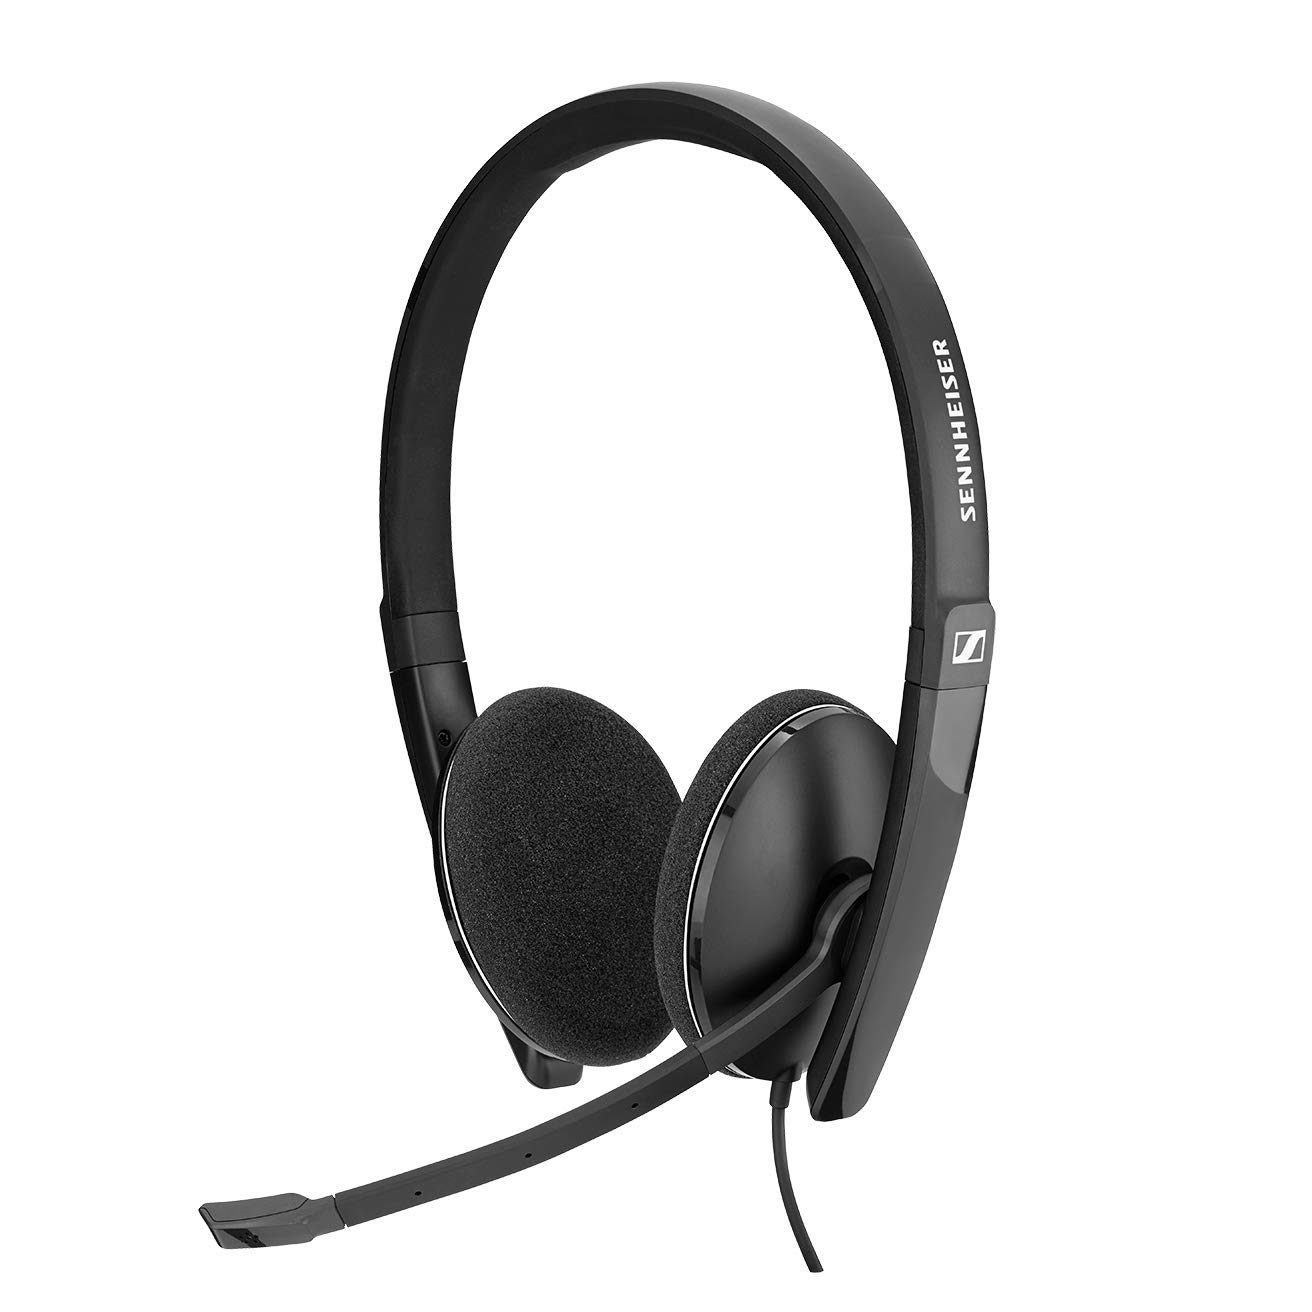 Sennheiser PC 8.2 CHAT, wired headset for casual gaming, e-learning and music, noise cancelling microphone, call control, foldable microphone, high comfort – USB-A connectivity